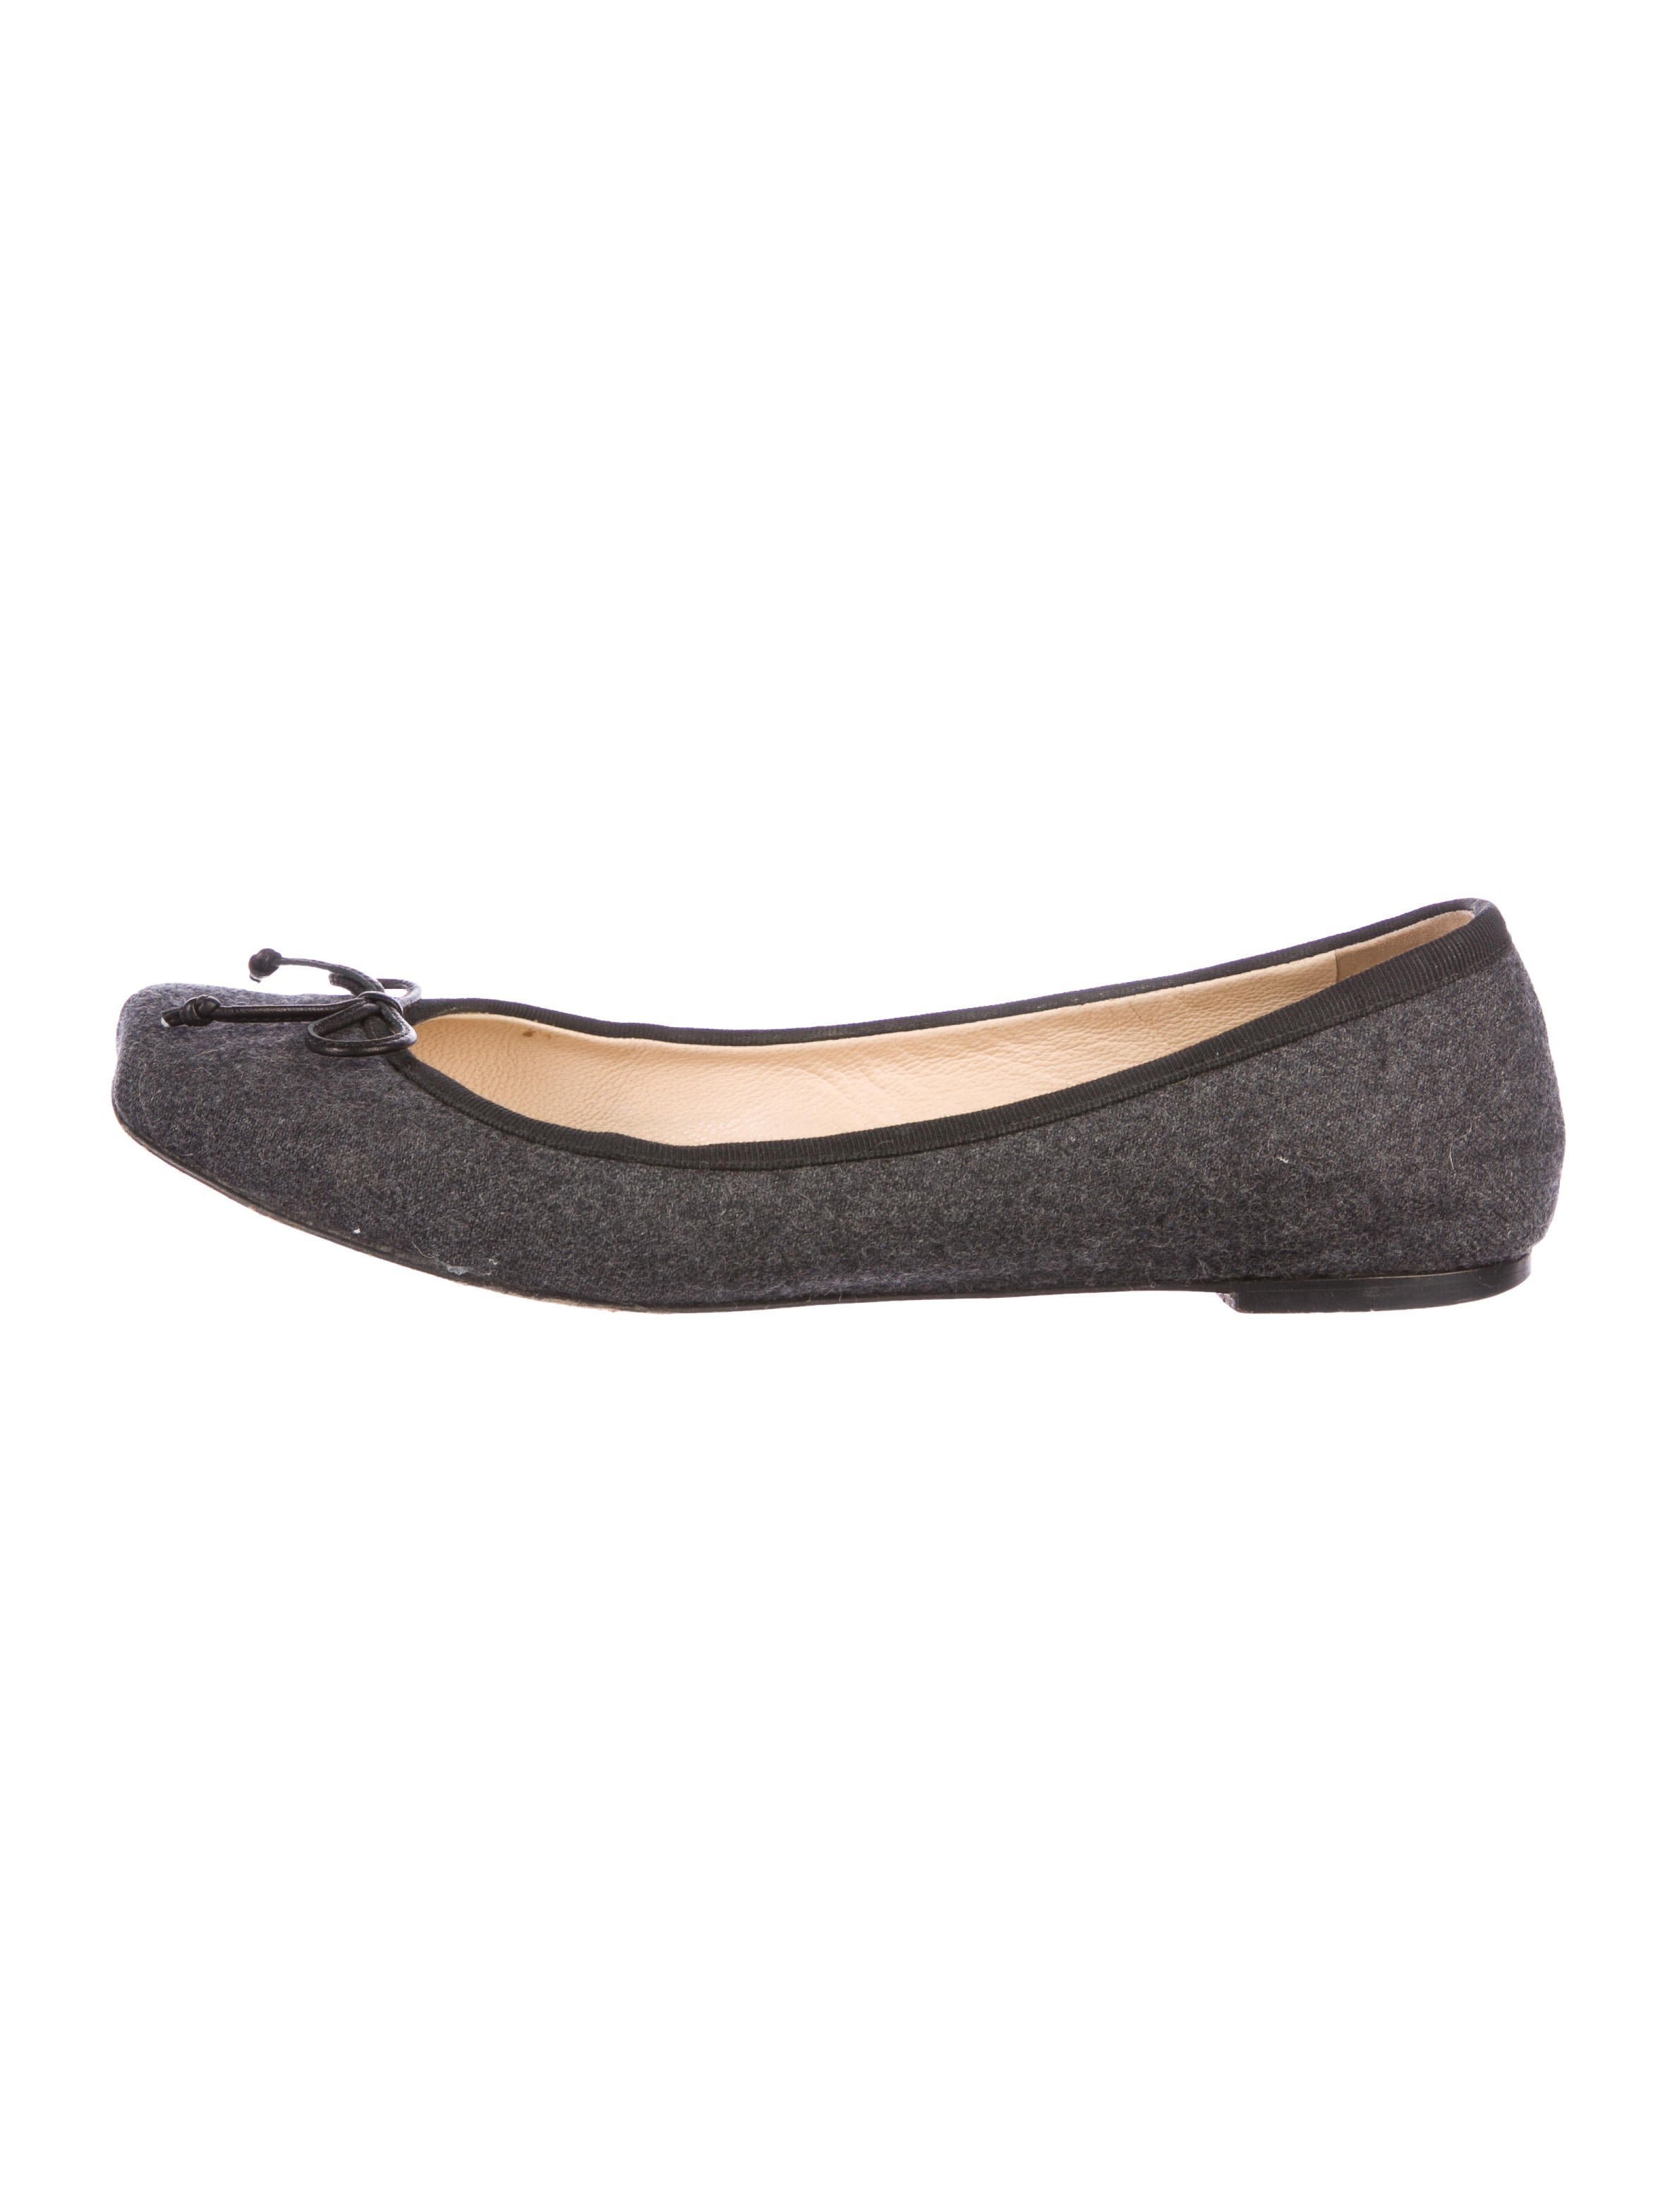 Christian Louboutin Felt Square-Toe Flats cheap sale 2014 best prices for sale cheap sale pick a best fashionable low price fee shipping sale online tCRg1